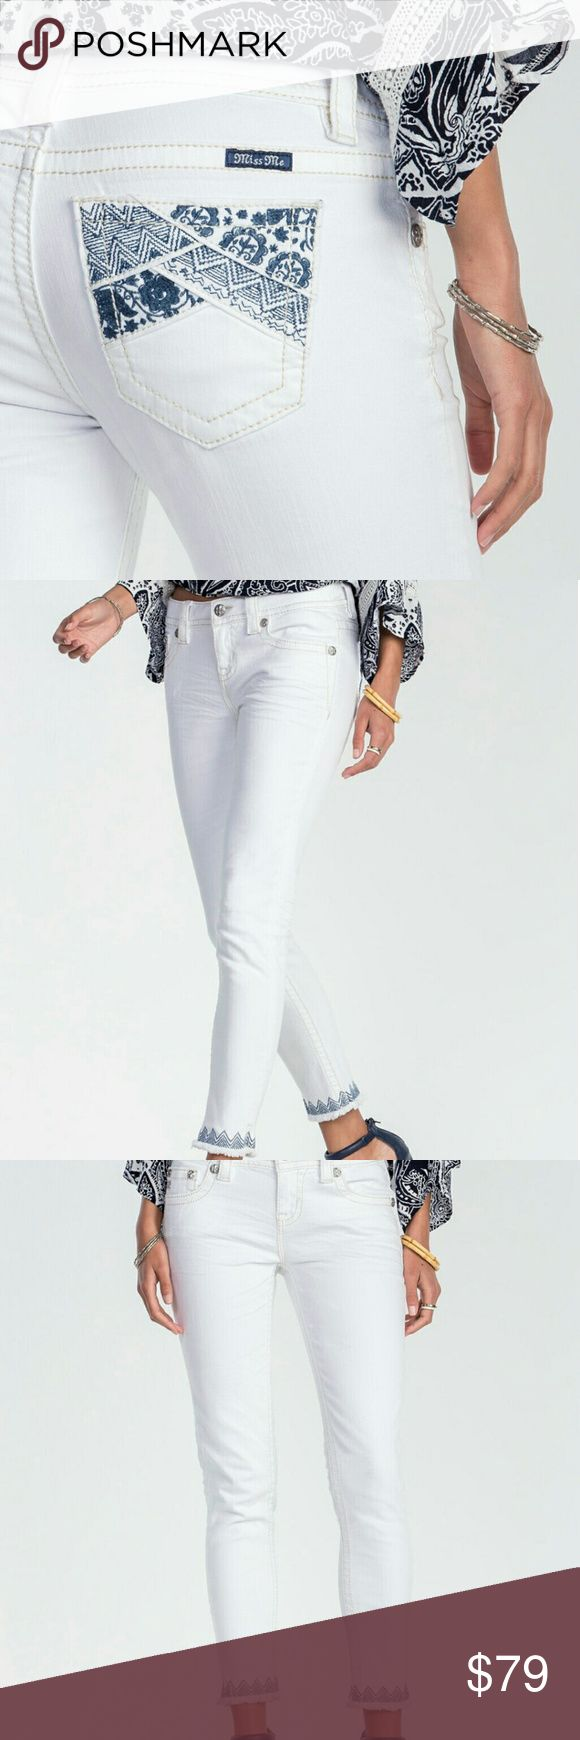 Miss Me White Skinny Ankle Embroidered Jean Price Firm im cheaper than Miss Me Clearance Price NWT :)  Mid rise ankle skinny white denim jean with ankle and back pocket floral embroidery  98% Cotton, 2% Spandex Imported Machine Wash Floral embroidered detail Fray edge hem Miss Me Jeans Ankle & Cropped